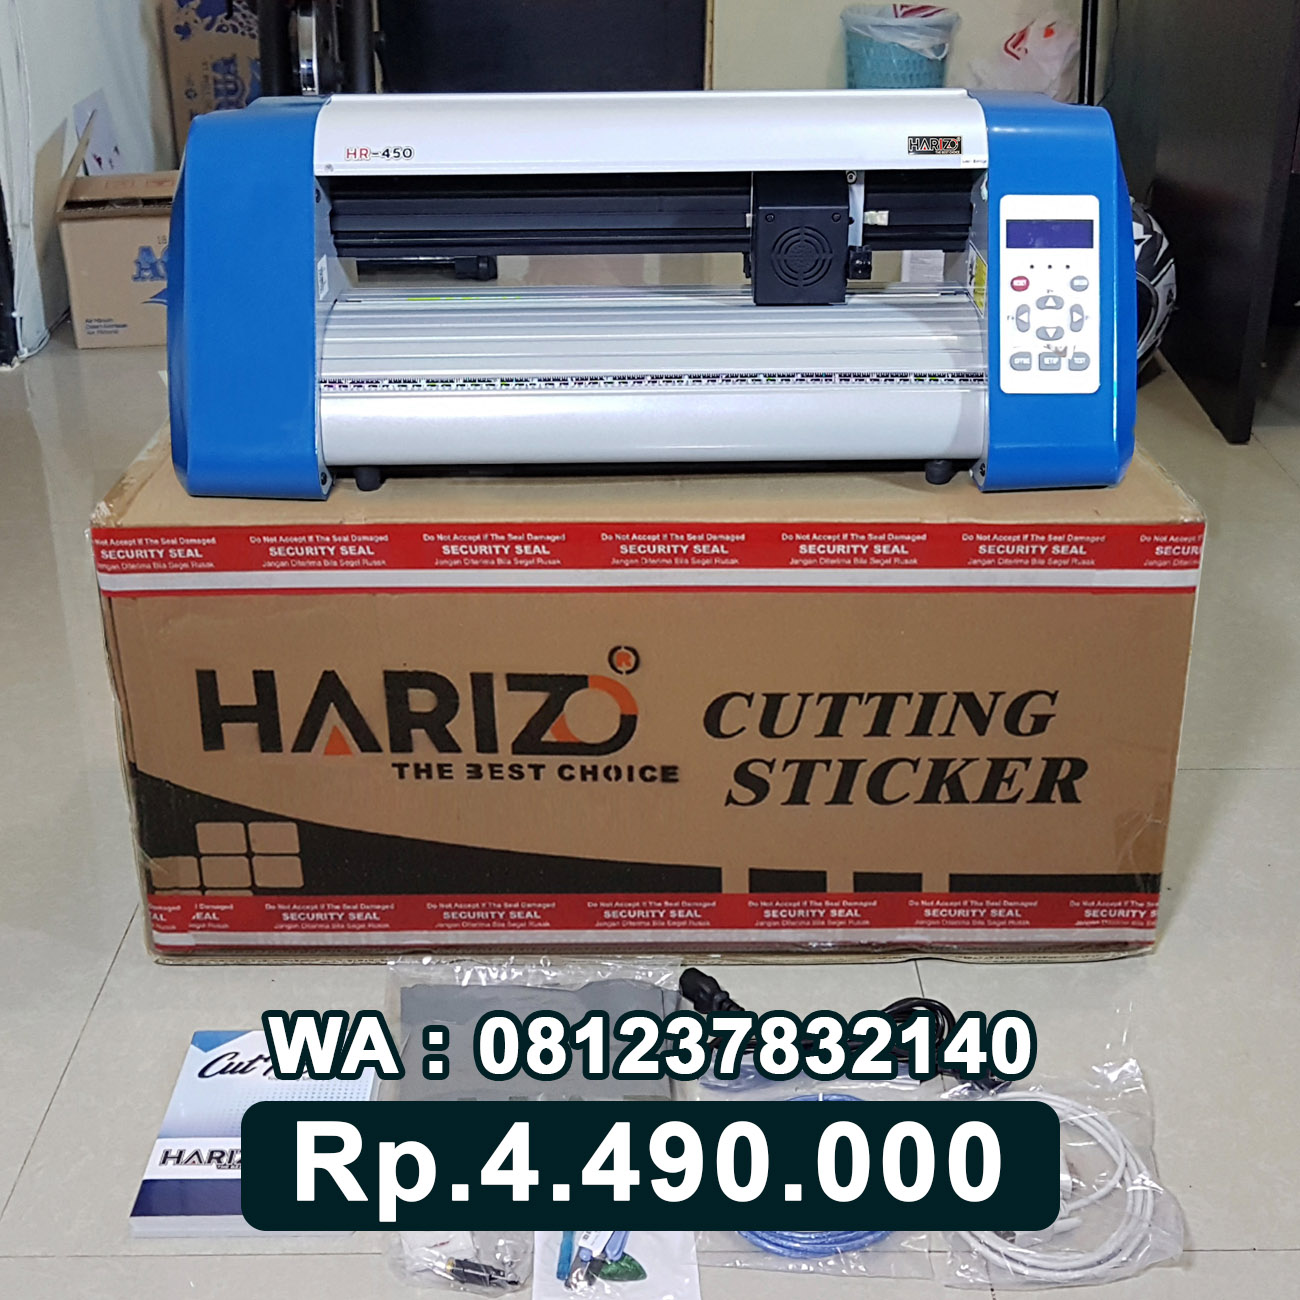 JUAL MESIN CUTTING STICKER HARIZO 450 Tarakan